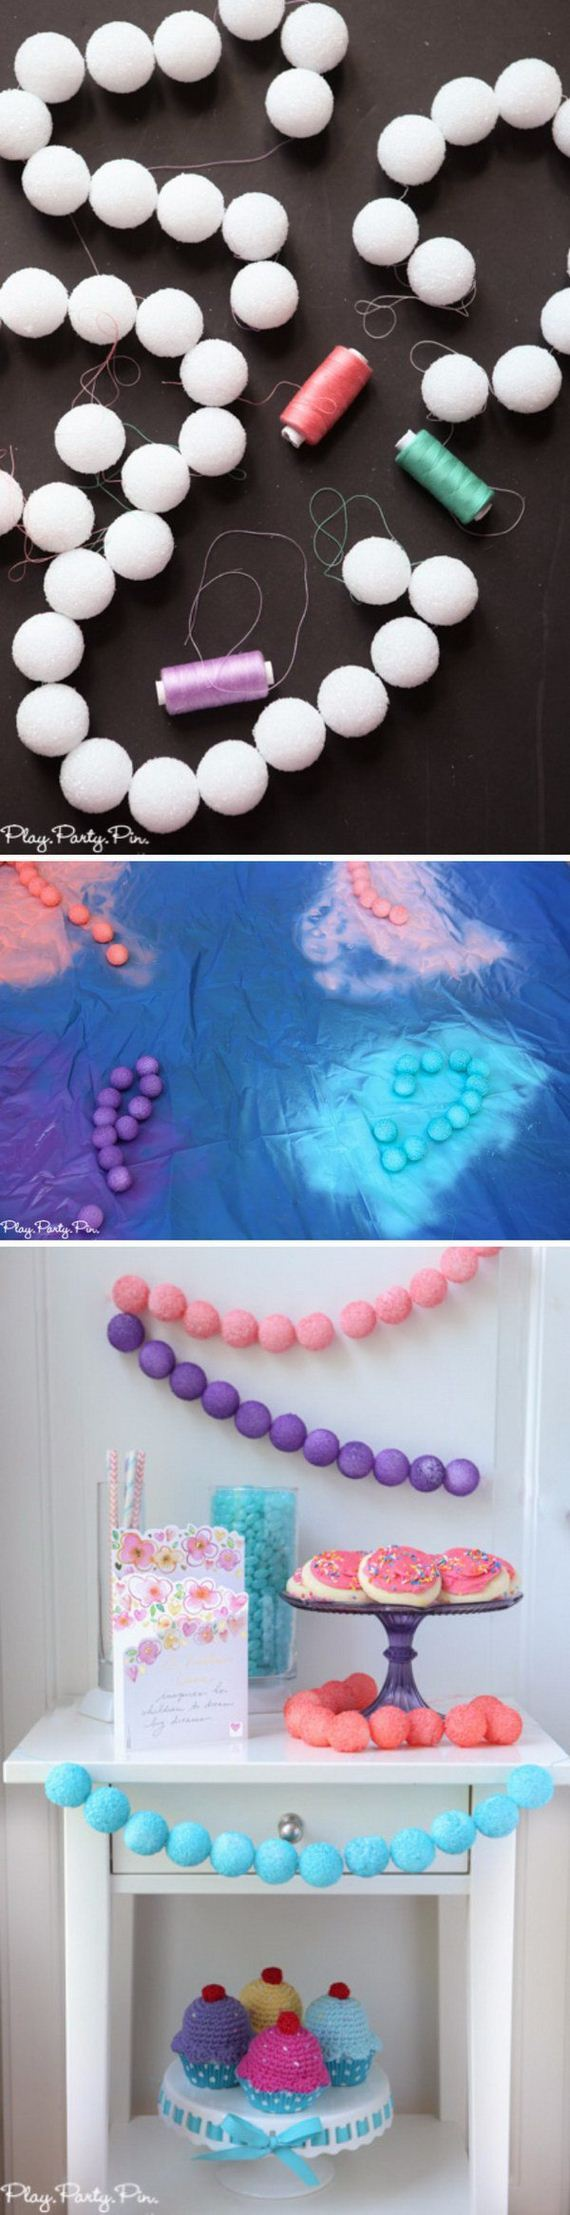 17-spray-paint-ideas